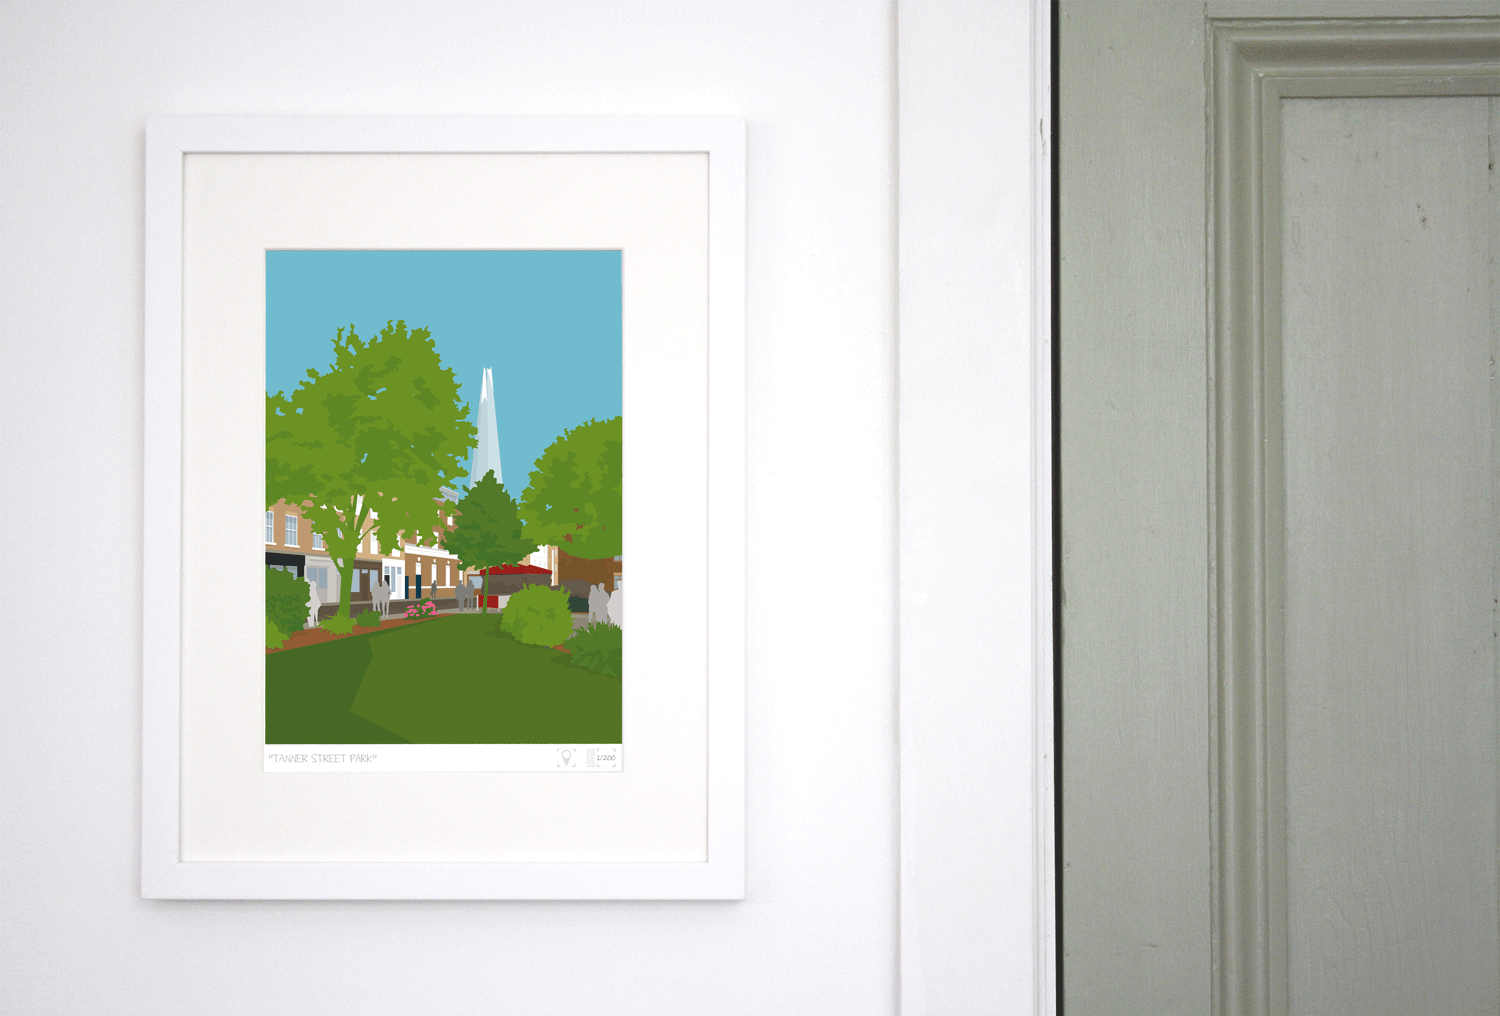 Place in Print Tanner Street Park Limited Edition Art Print Lifestyle